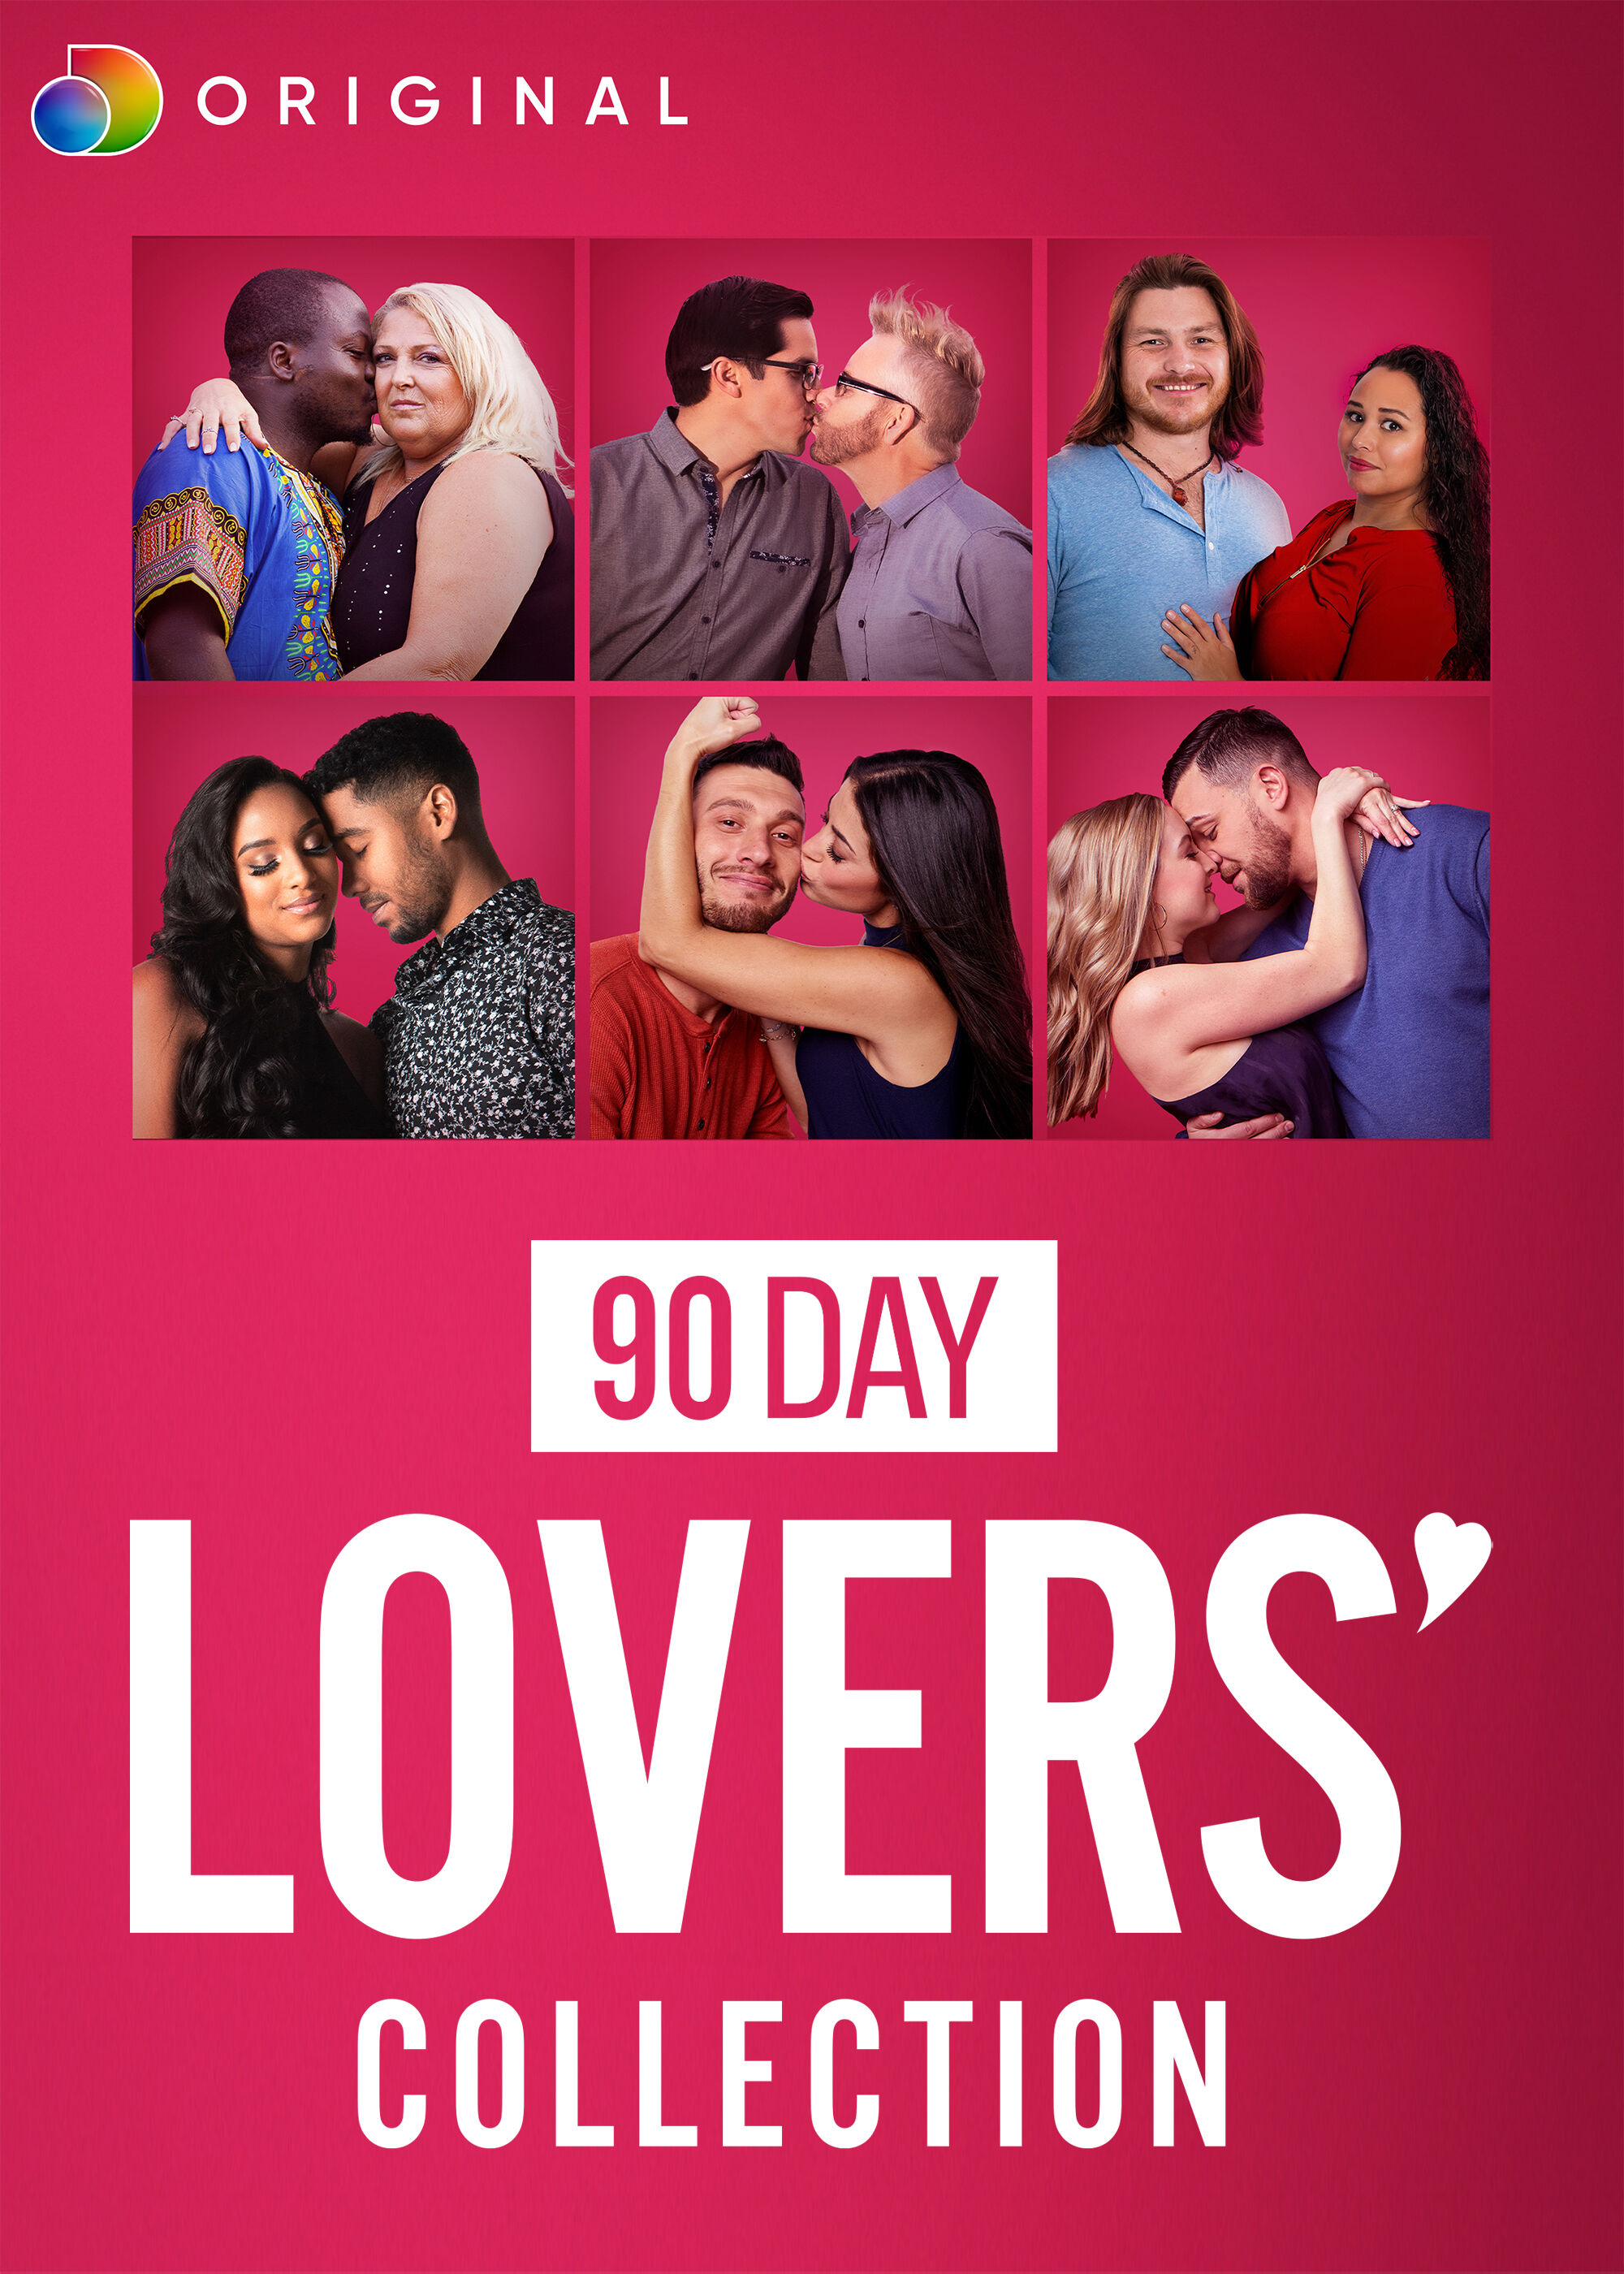 90 Day Lovers' Collection ne zaman